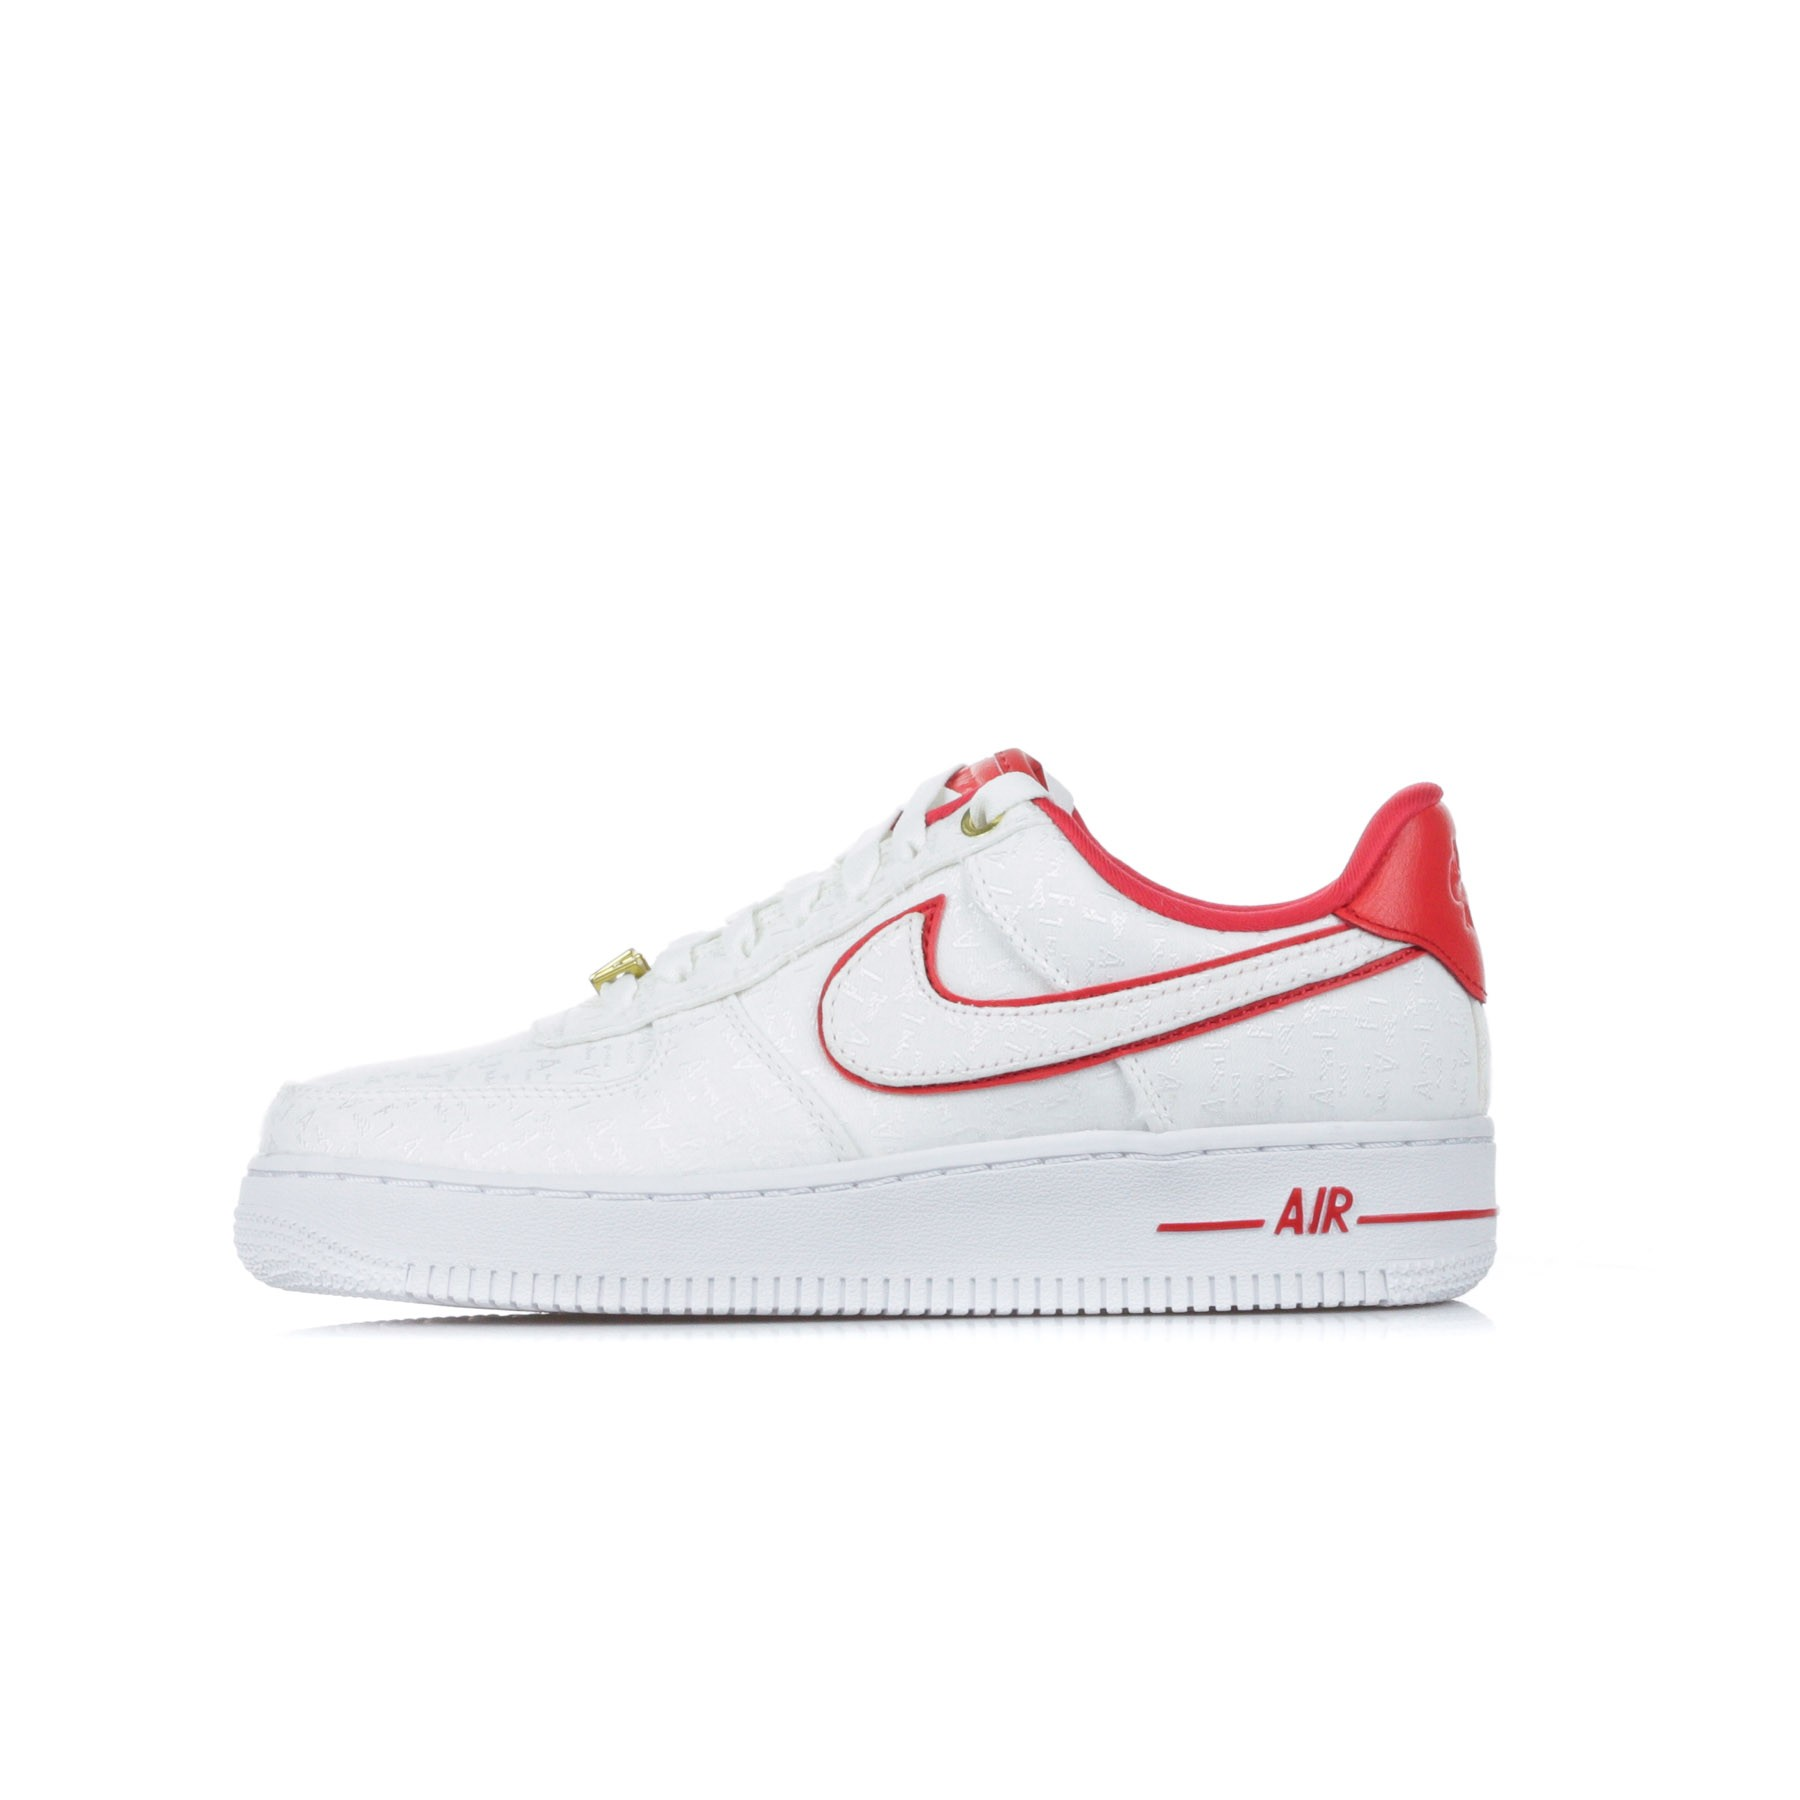 university red air force 1 high